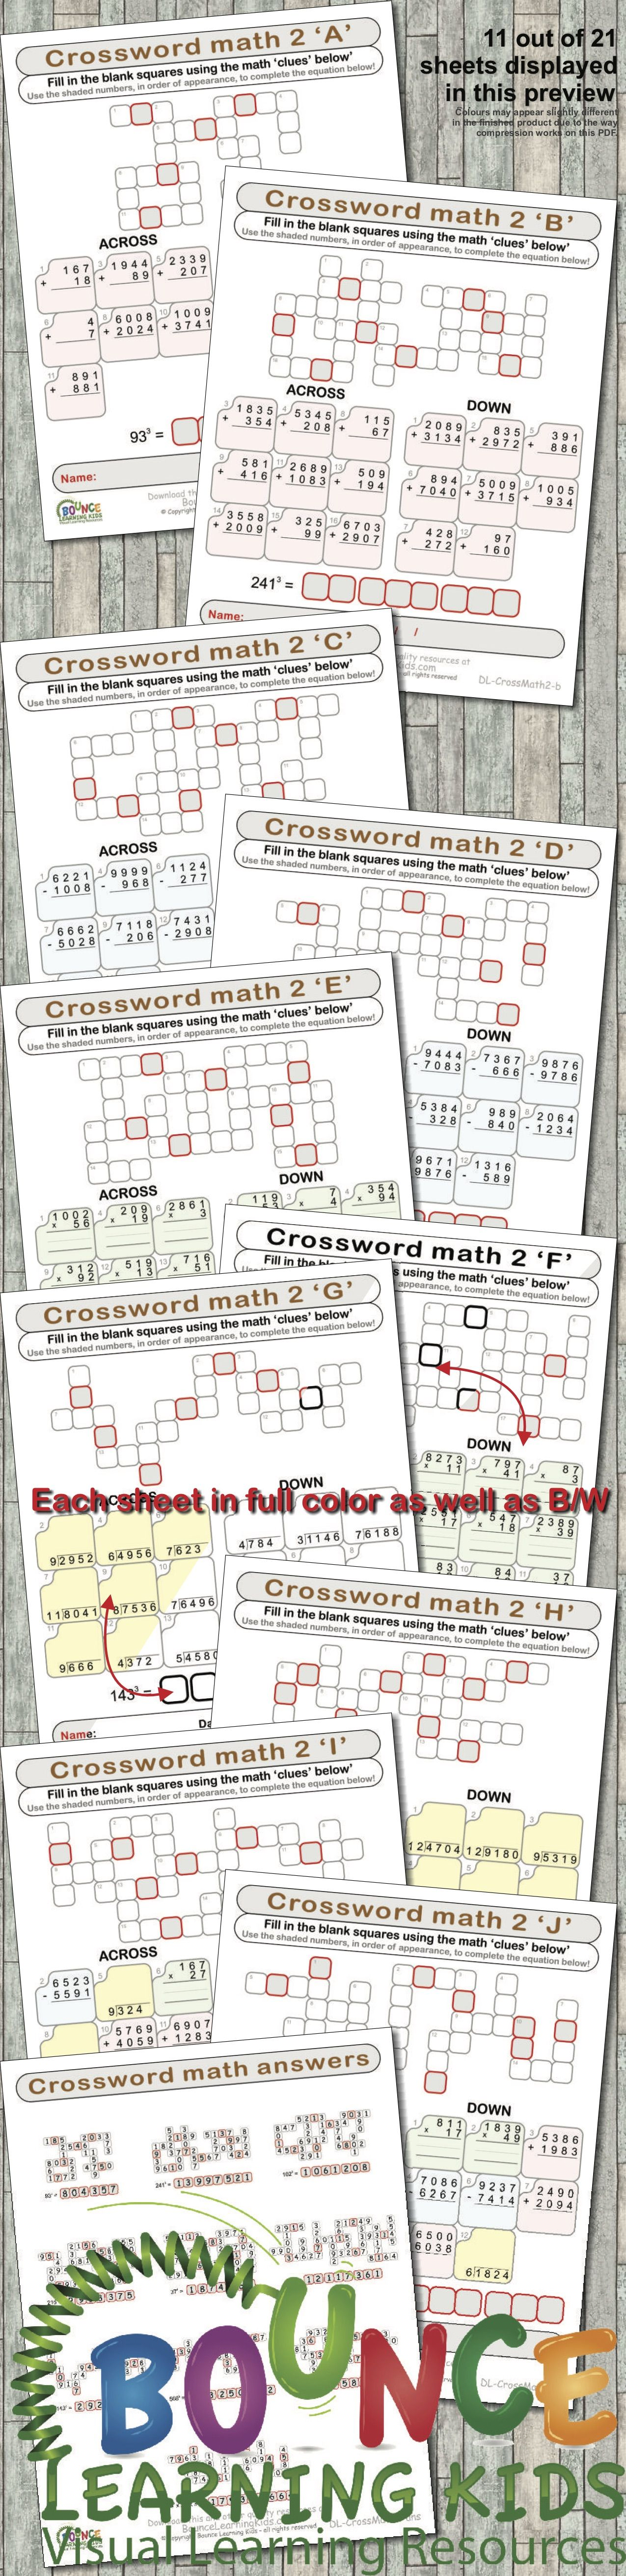 Math Crosswords 2 34 Distance Learning Crosswords With